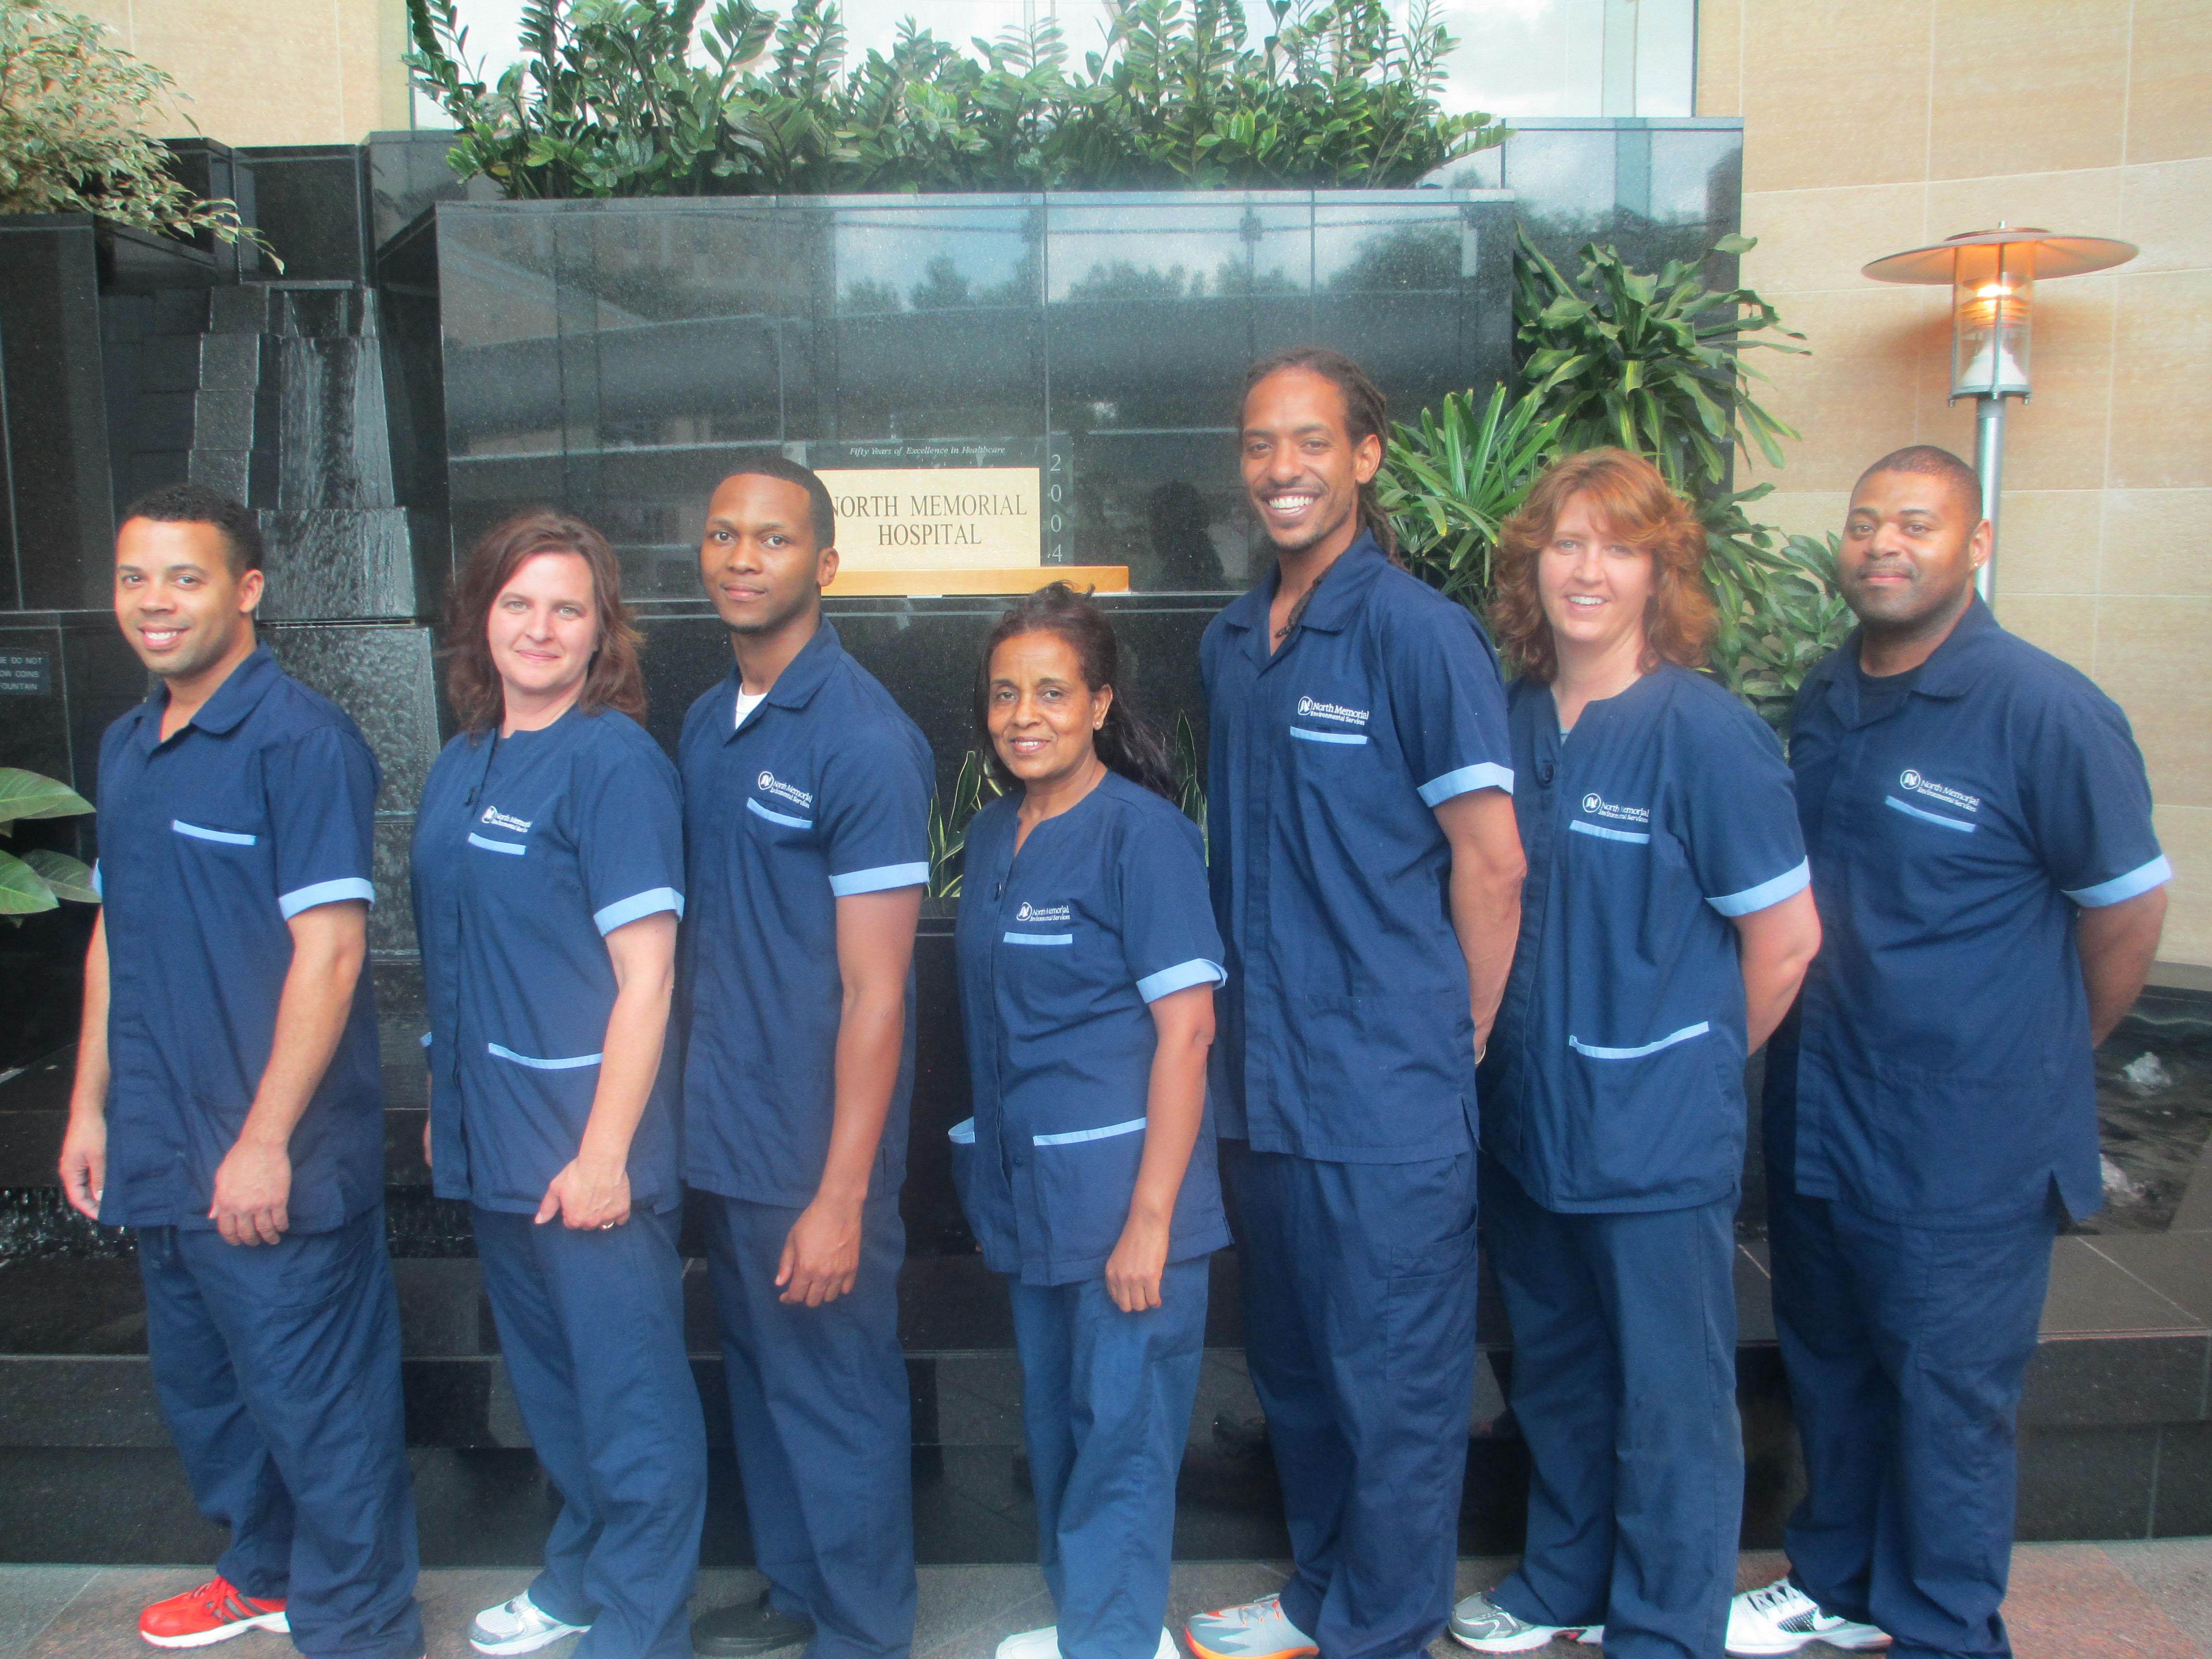 6ed02ed905e North Memorial Environmental Services Team - nursing uniforms outfitted by Uniform  Advantage